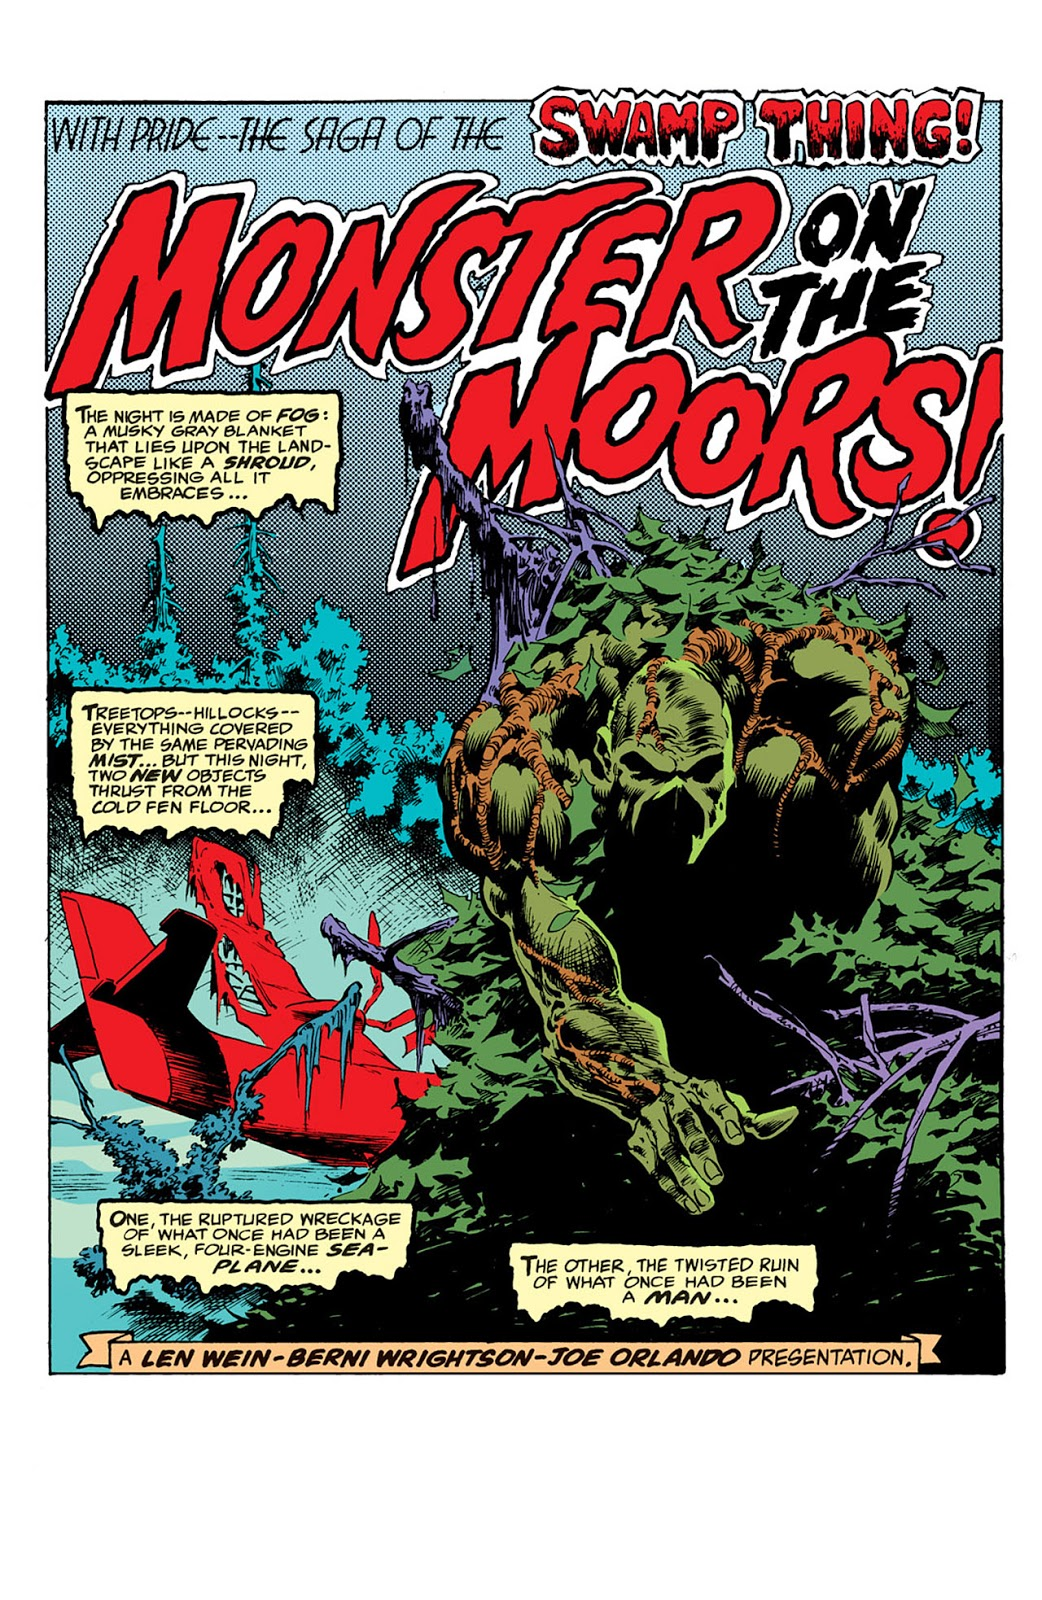 Swamp Thing rises from the wreckage.